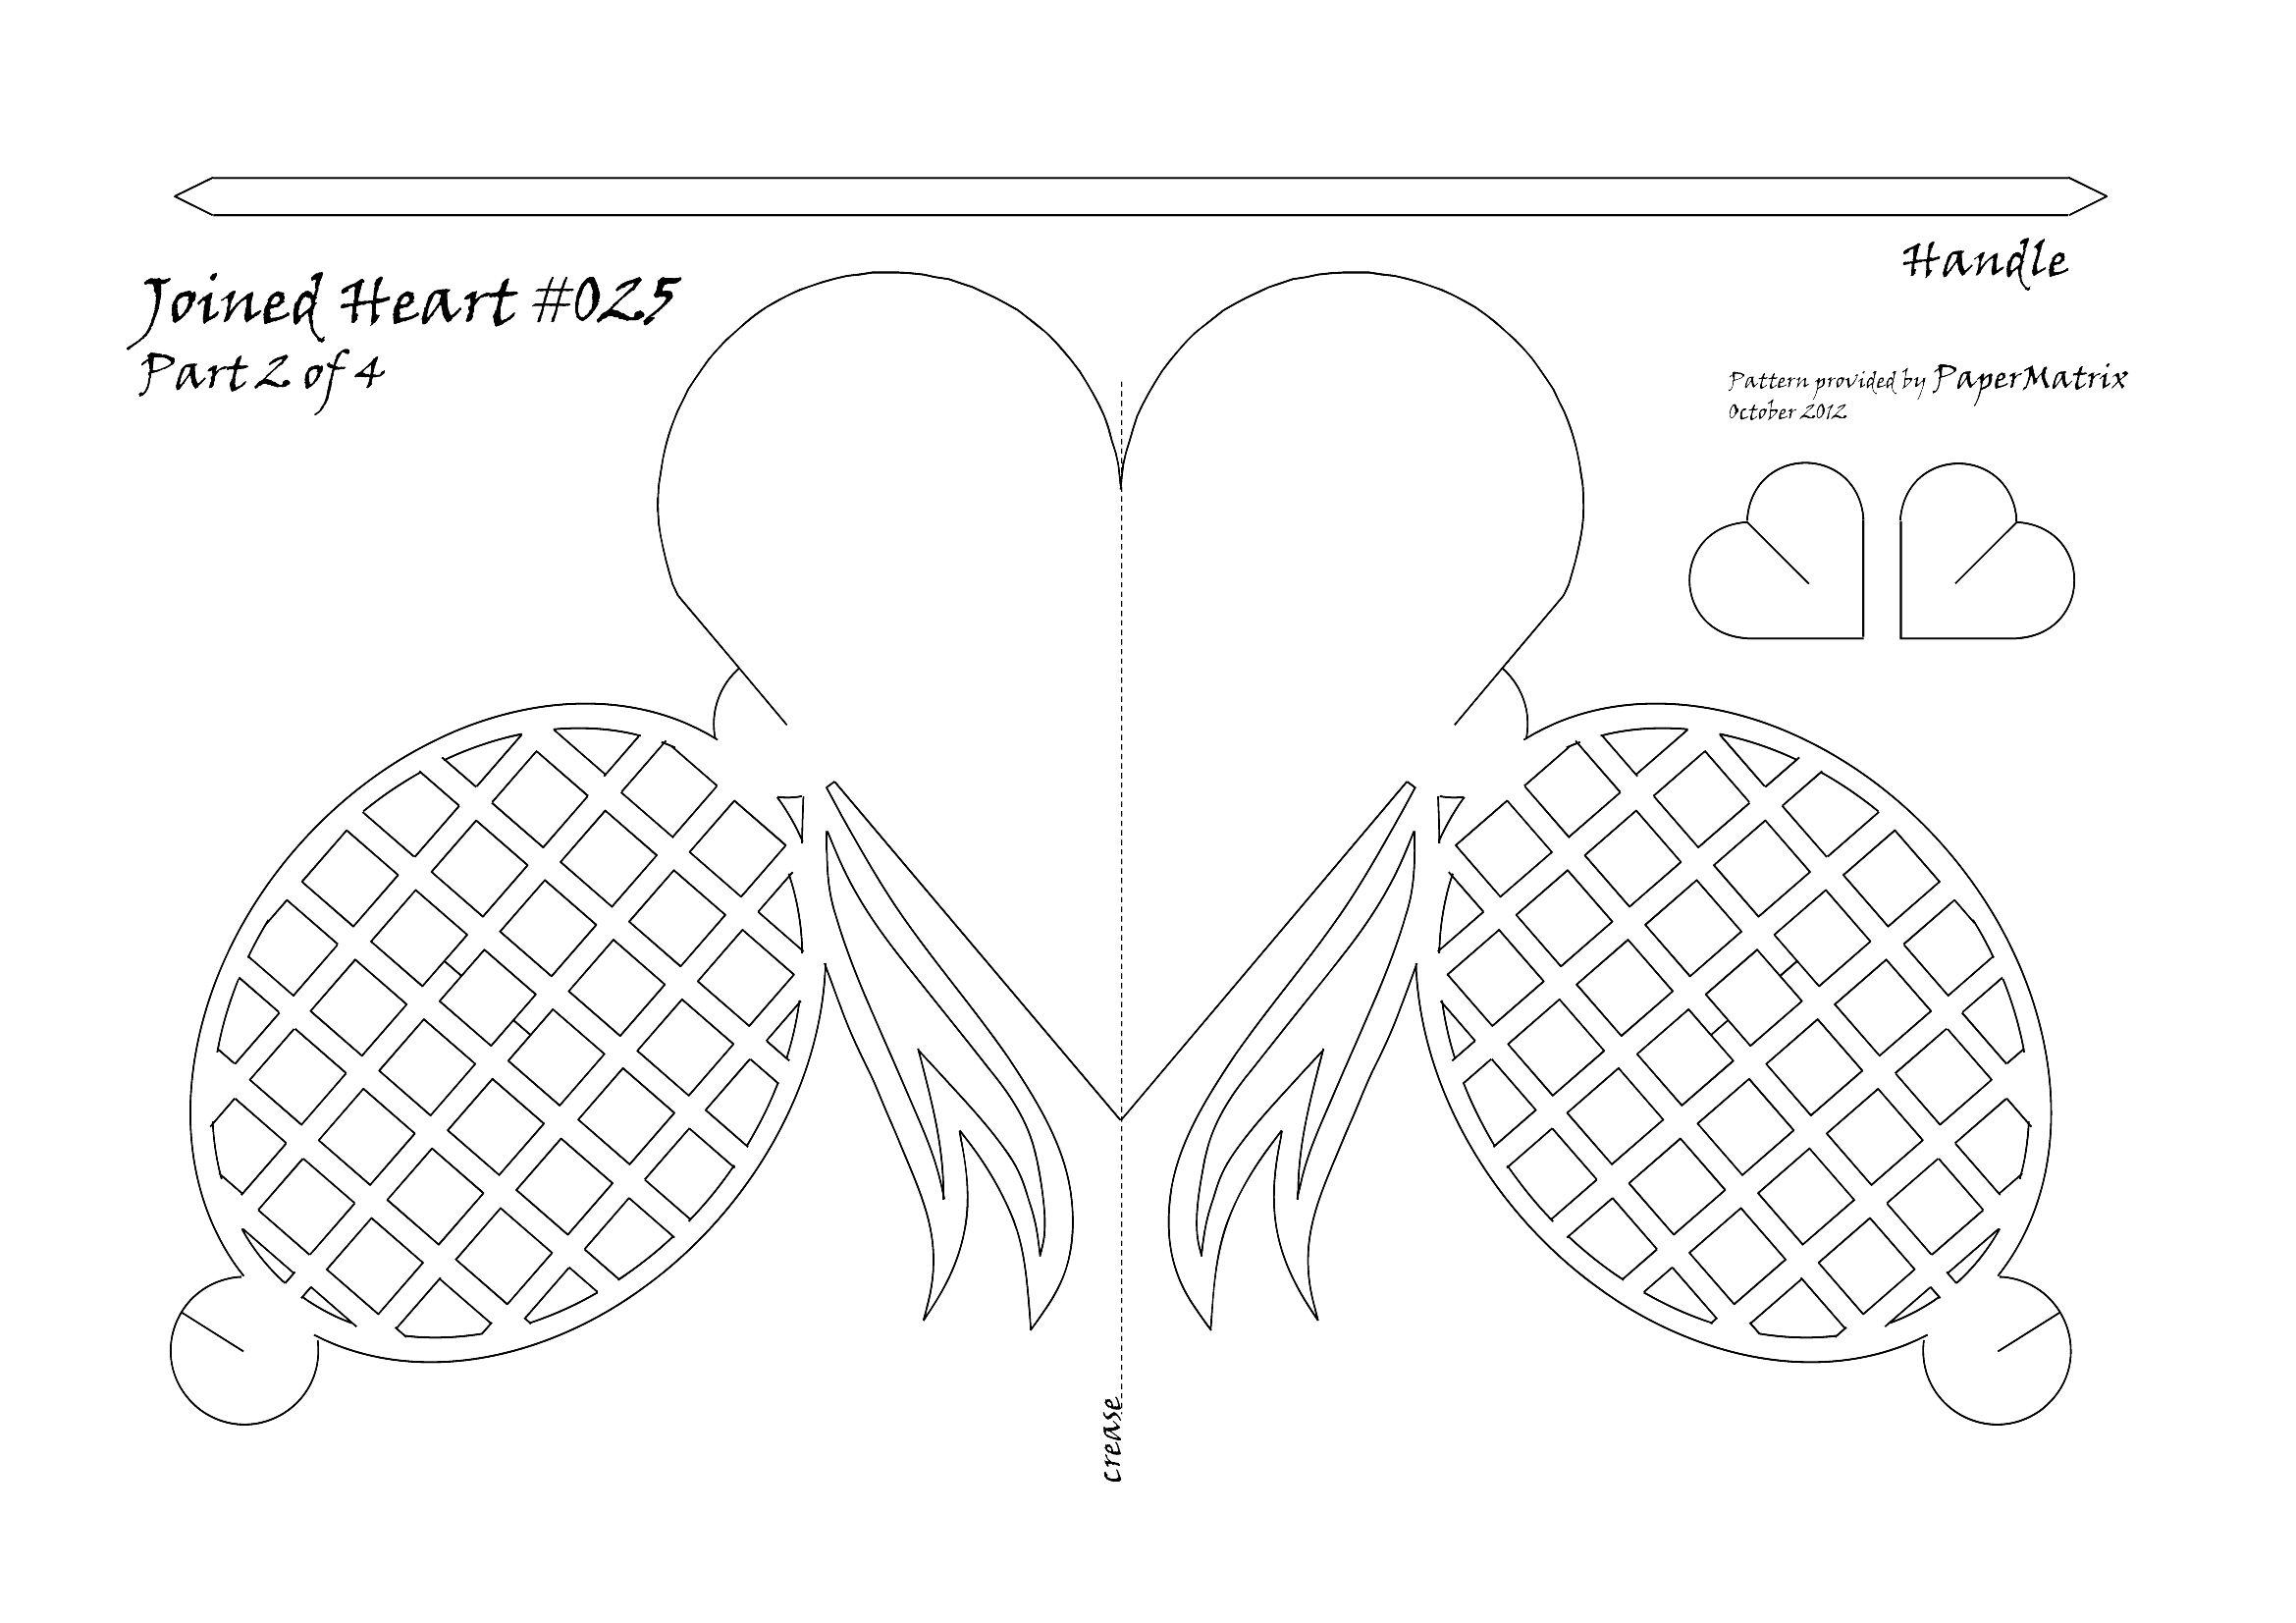 Bow heart 025 pattern 2 template loves pinterest paper hearts bow heart 025 pattern 2 maxwellsz